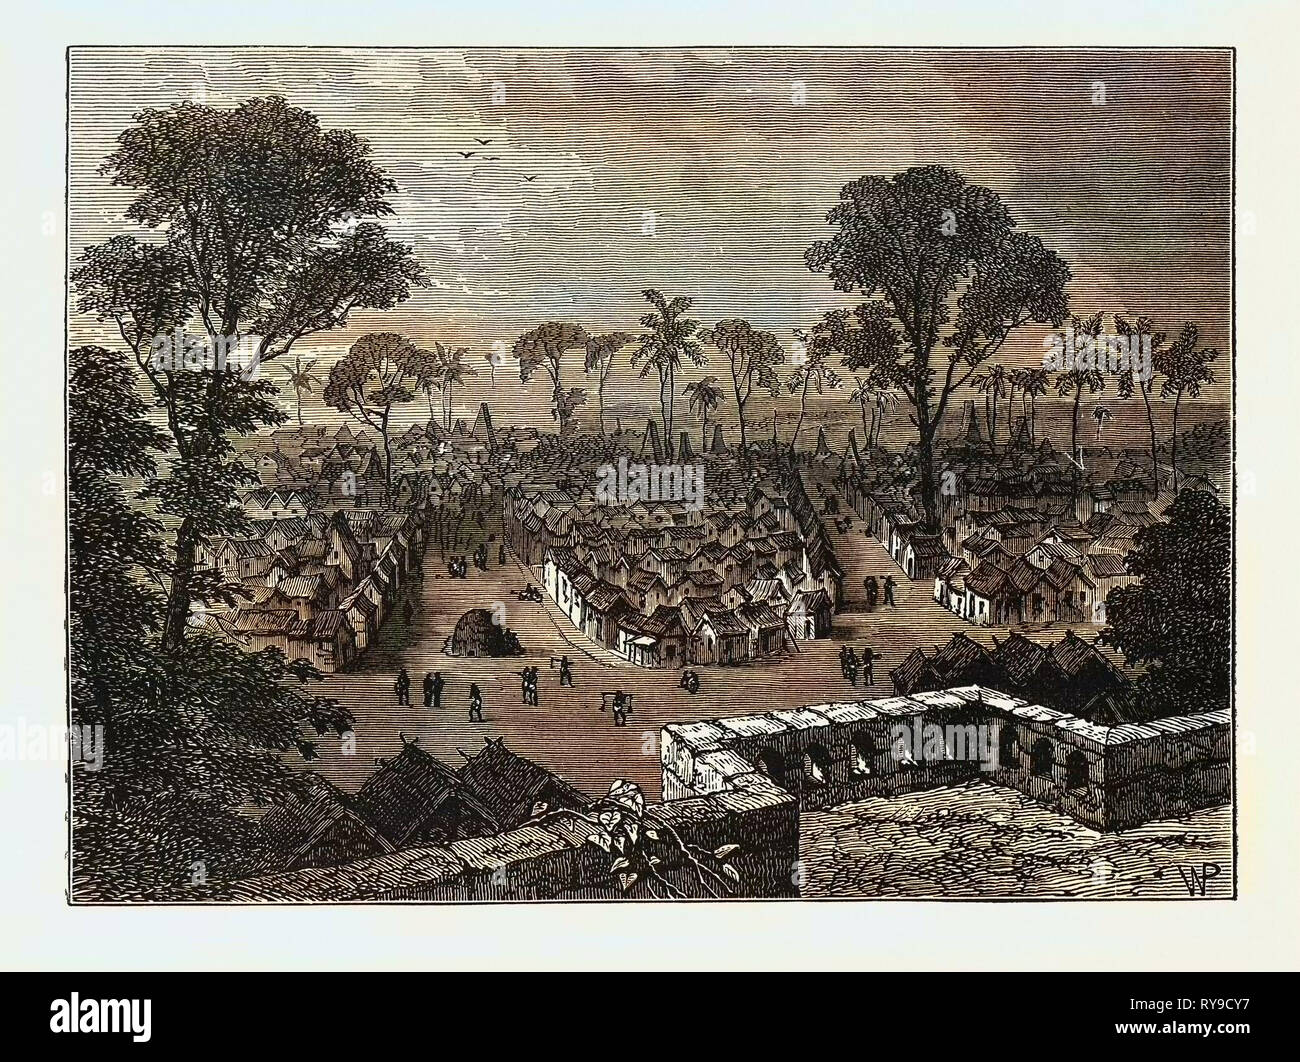 VIEW OF COOMASSIE, THE CAPITAL OF ASHANTI. Ashanti Empire, a pre-colonial West African state in what is now Ghana - Stock Image